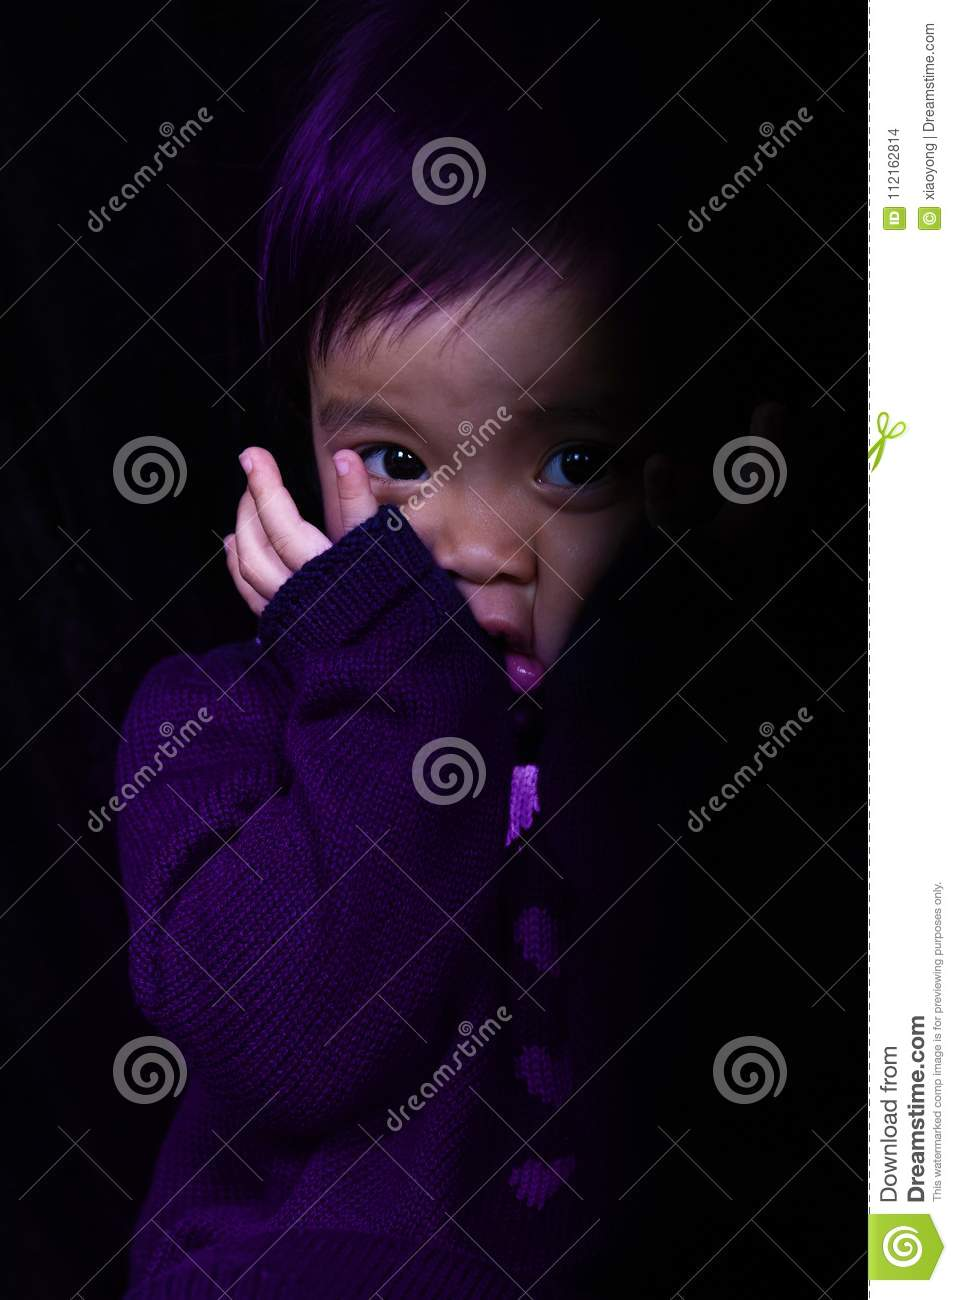 Scaring Asia baby girl in purple